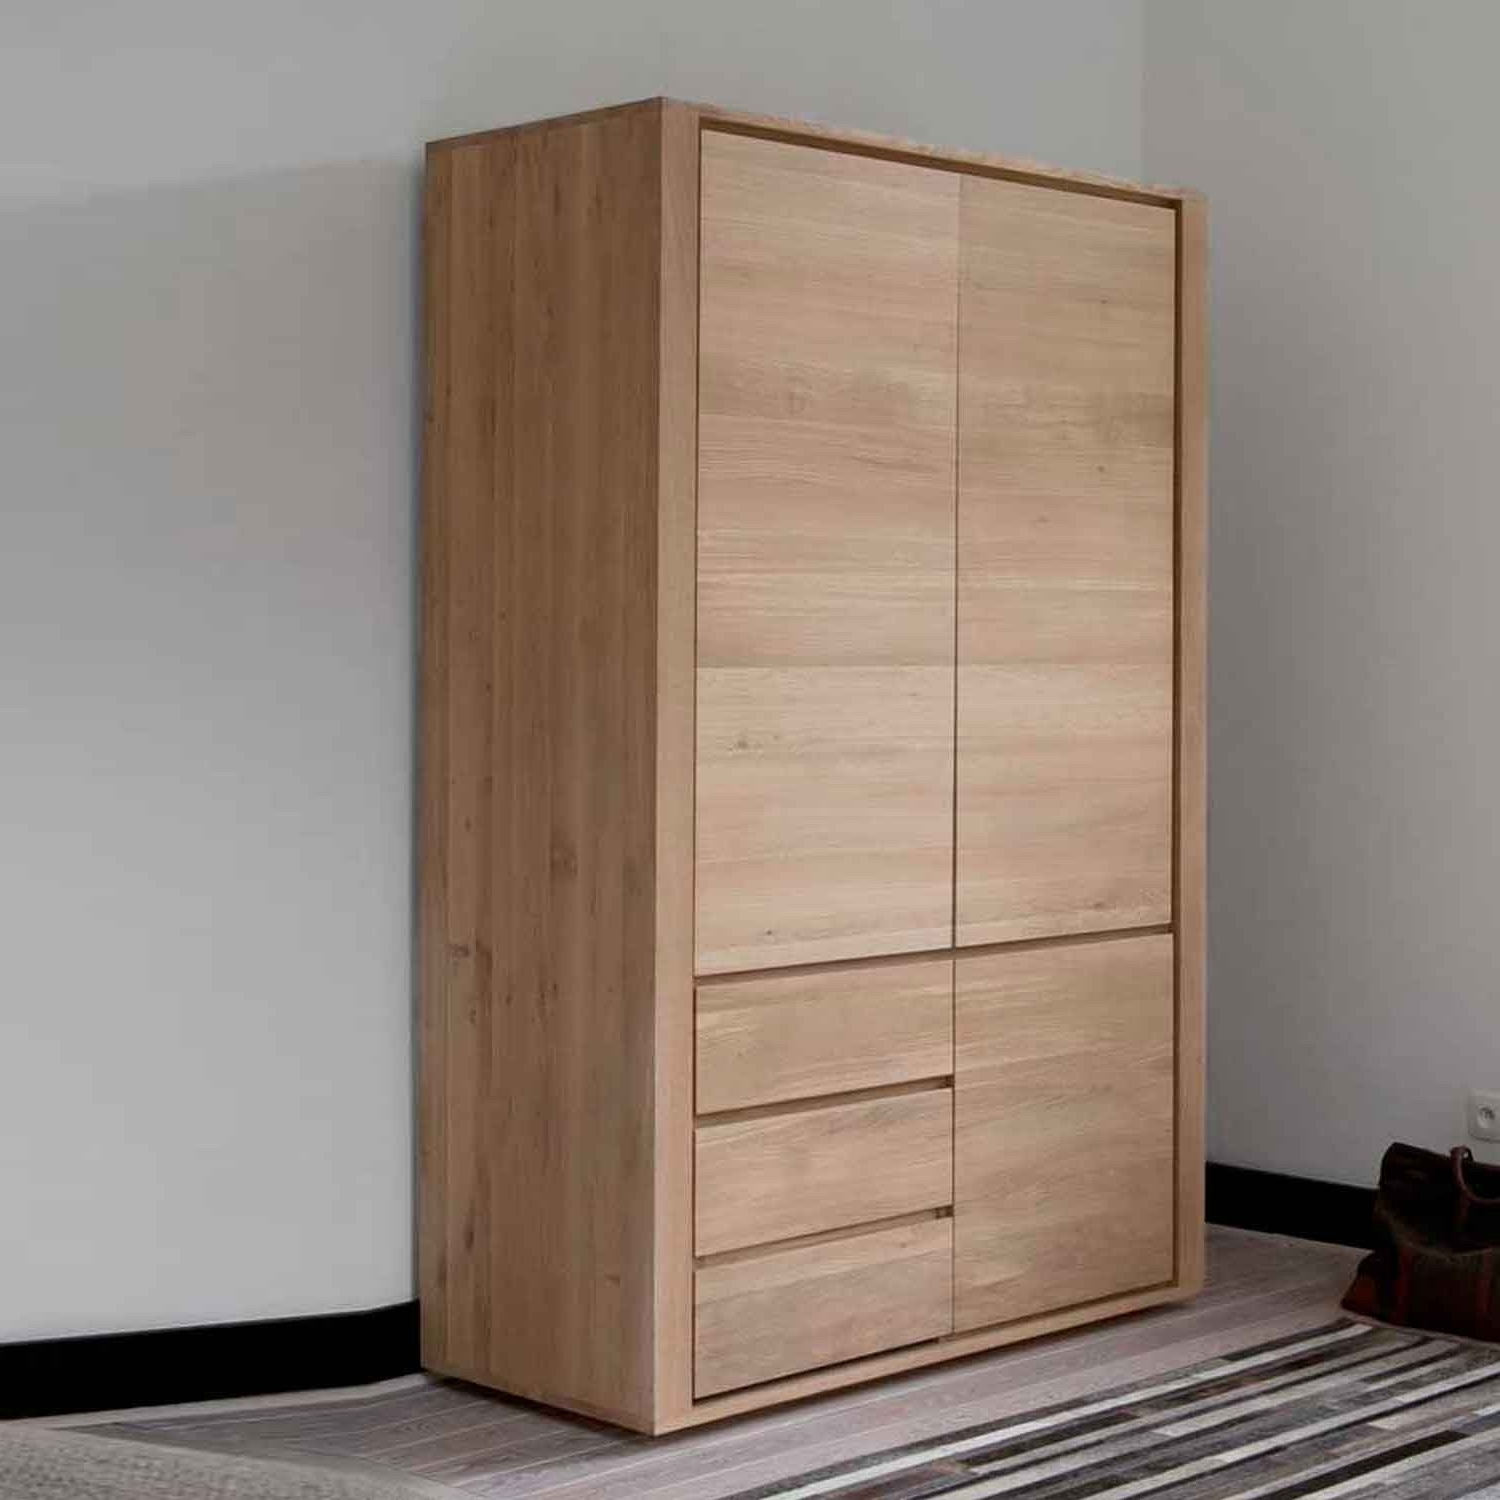 Most Recently Released Oak Wardrobes With Drawers And Shelves Intended For Ethnicraft Oak Shadow Dresser – 3 Doors 2 Drawers (View 6 of 15)